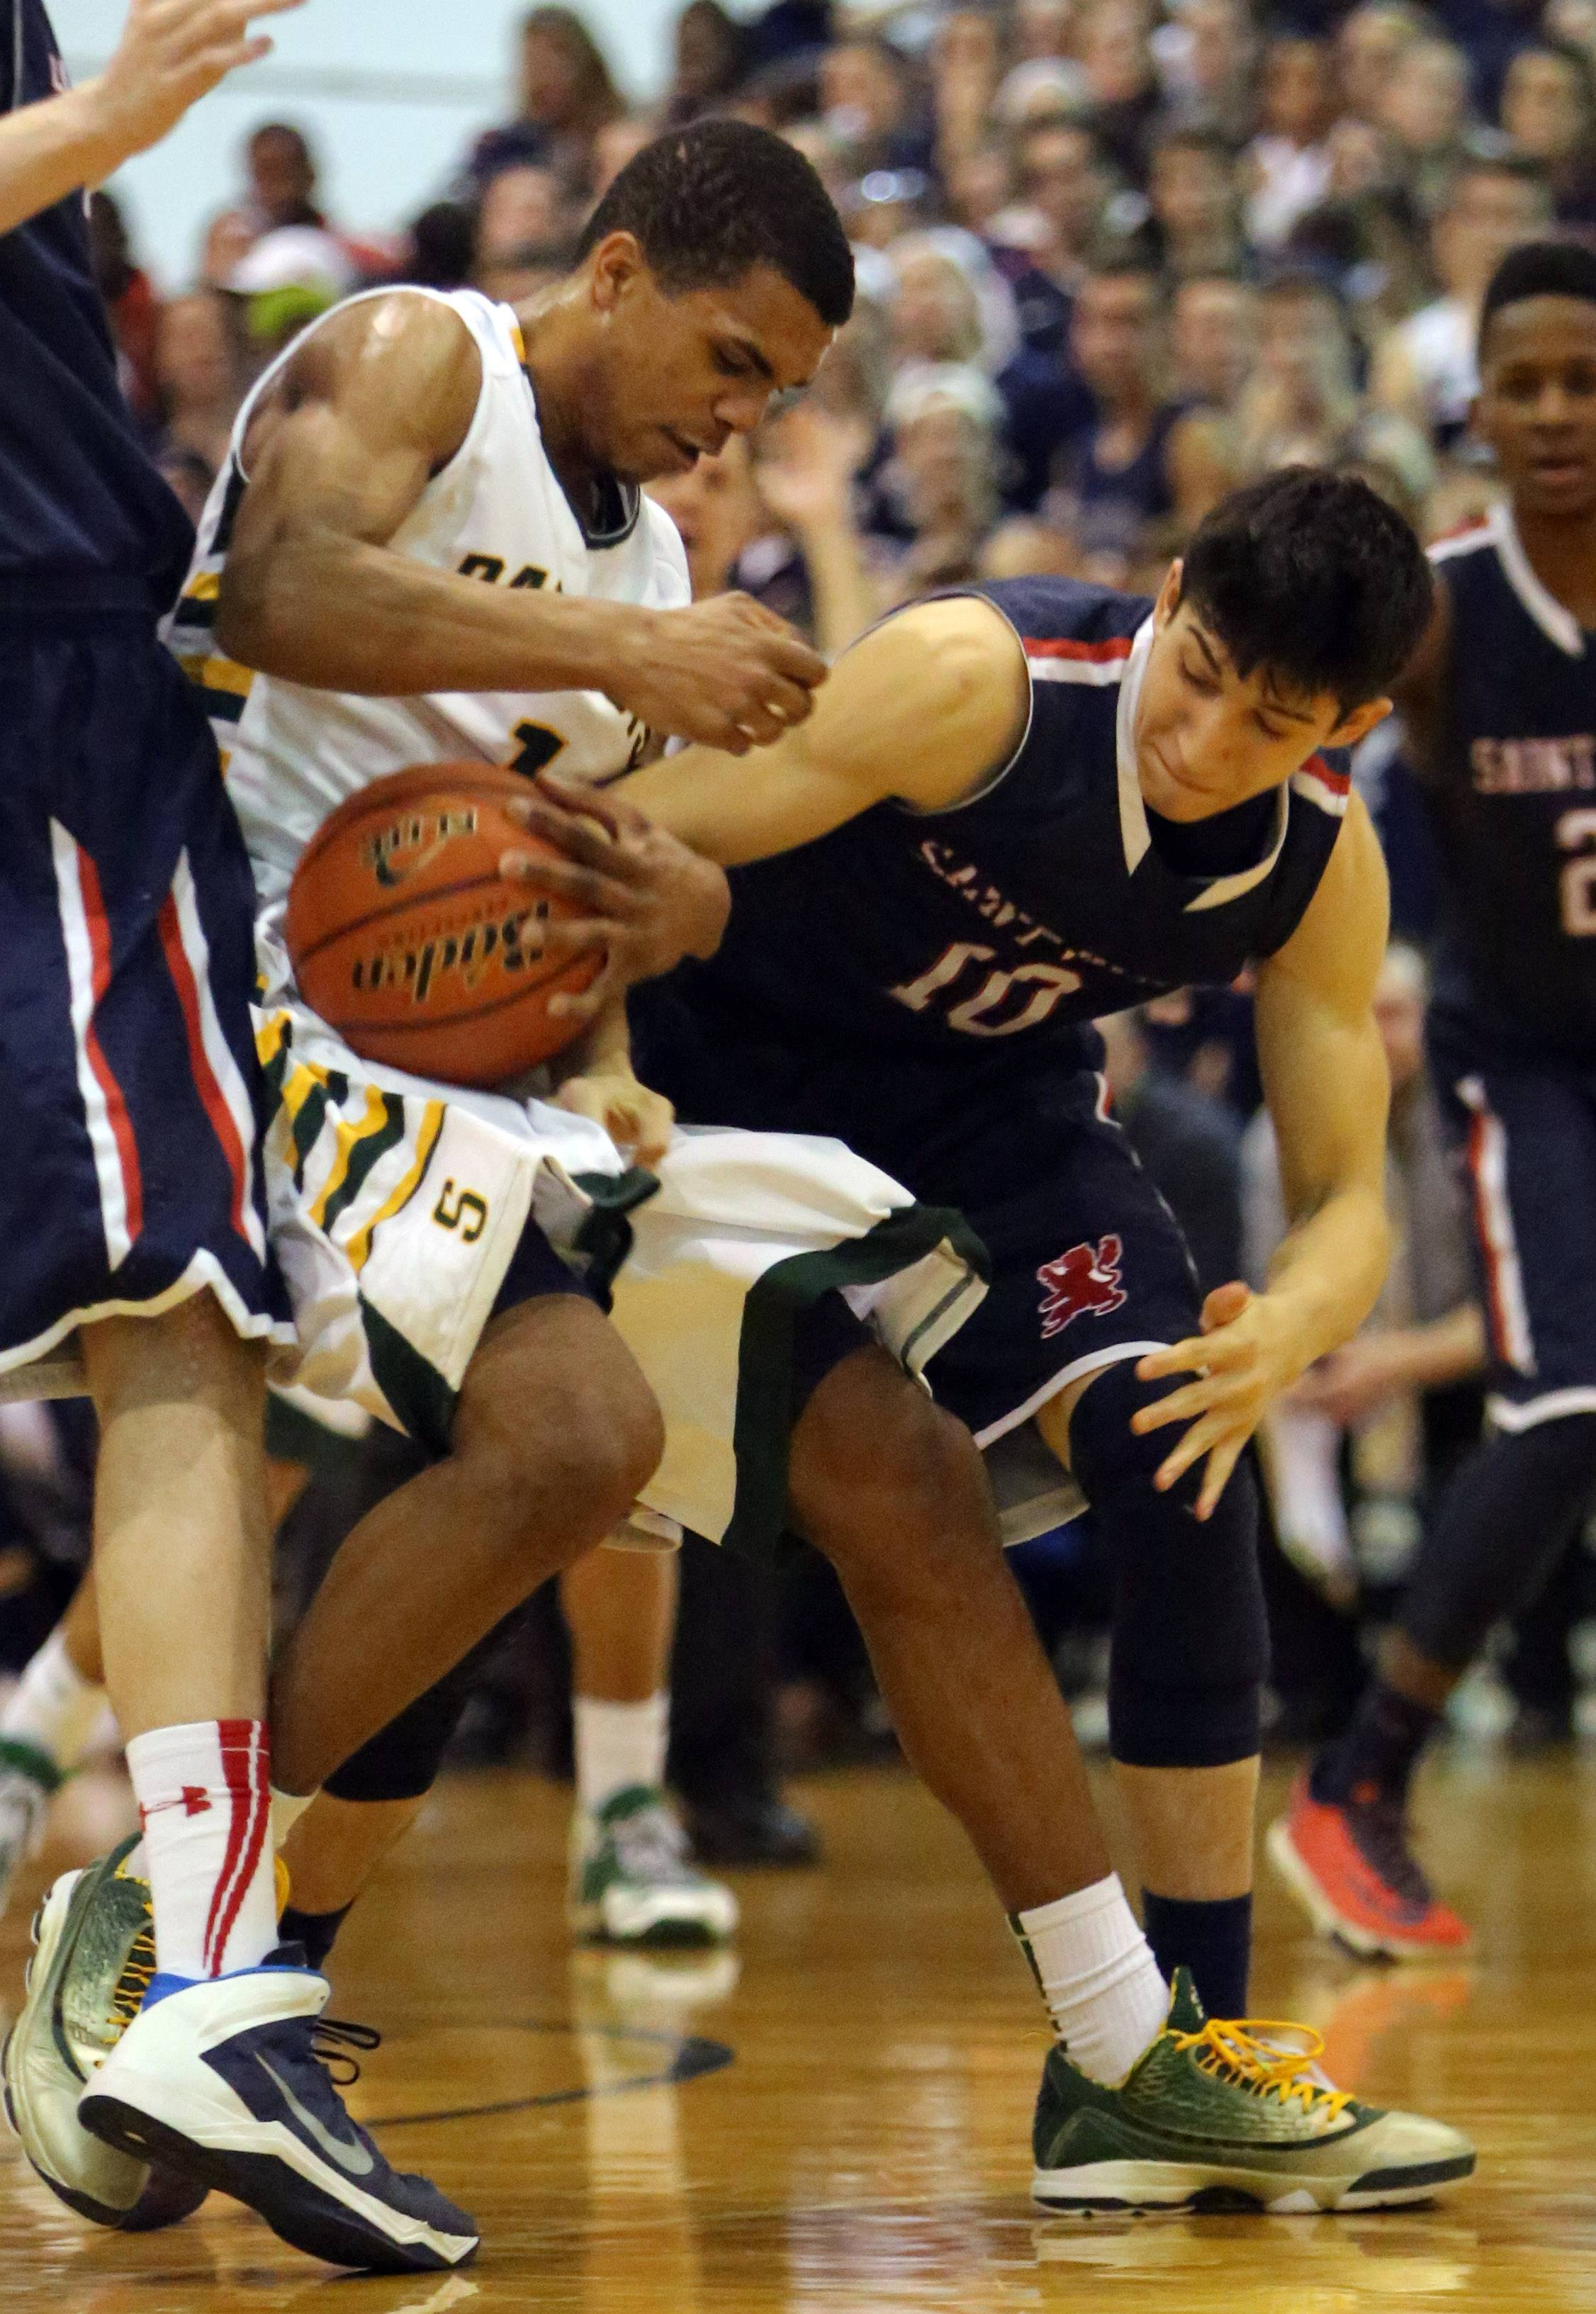 Stevenson's Connor Cashaw, left, and St. Viator's Robert Grant battle for a loose ball.